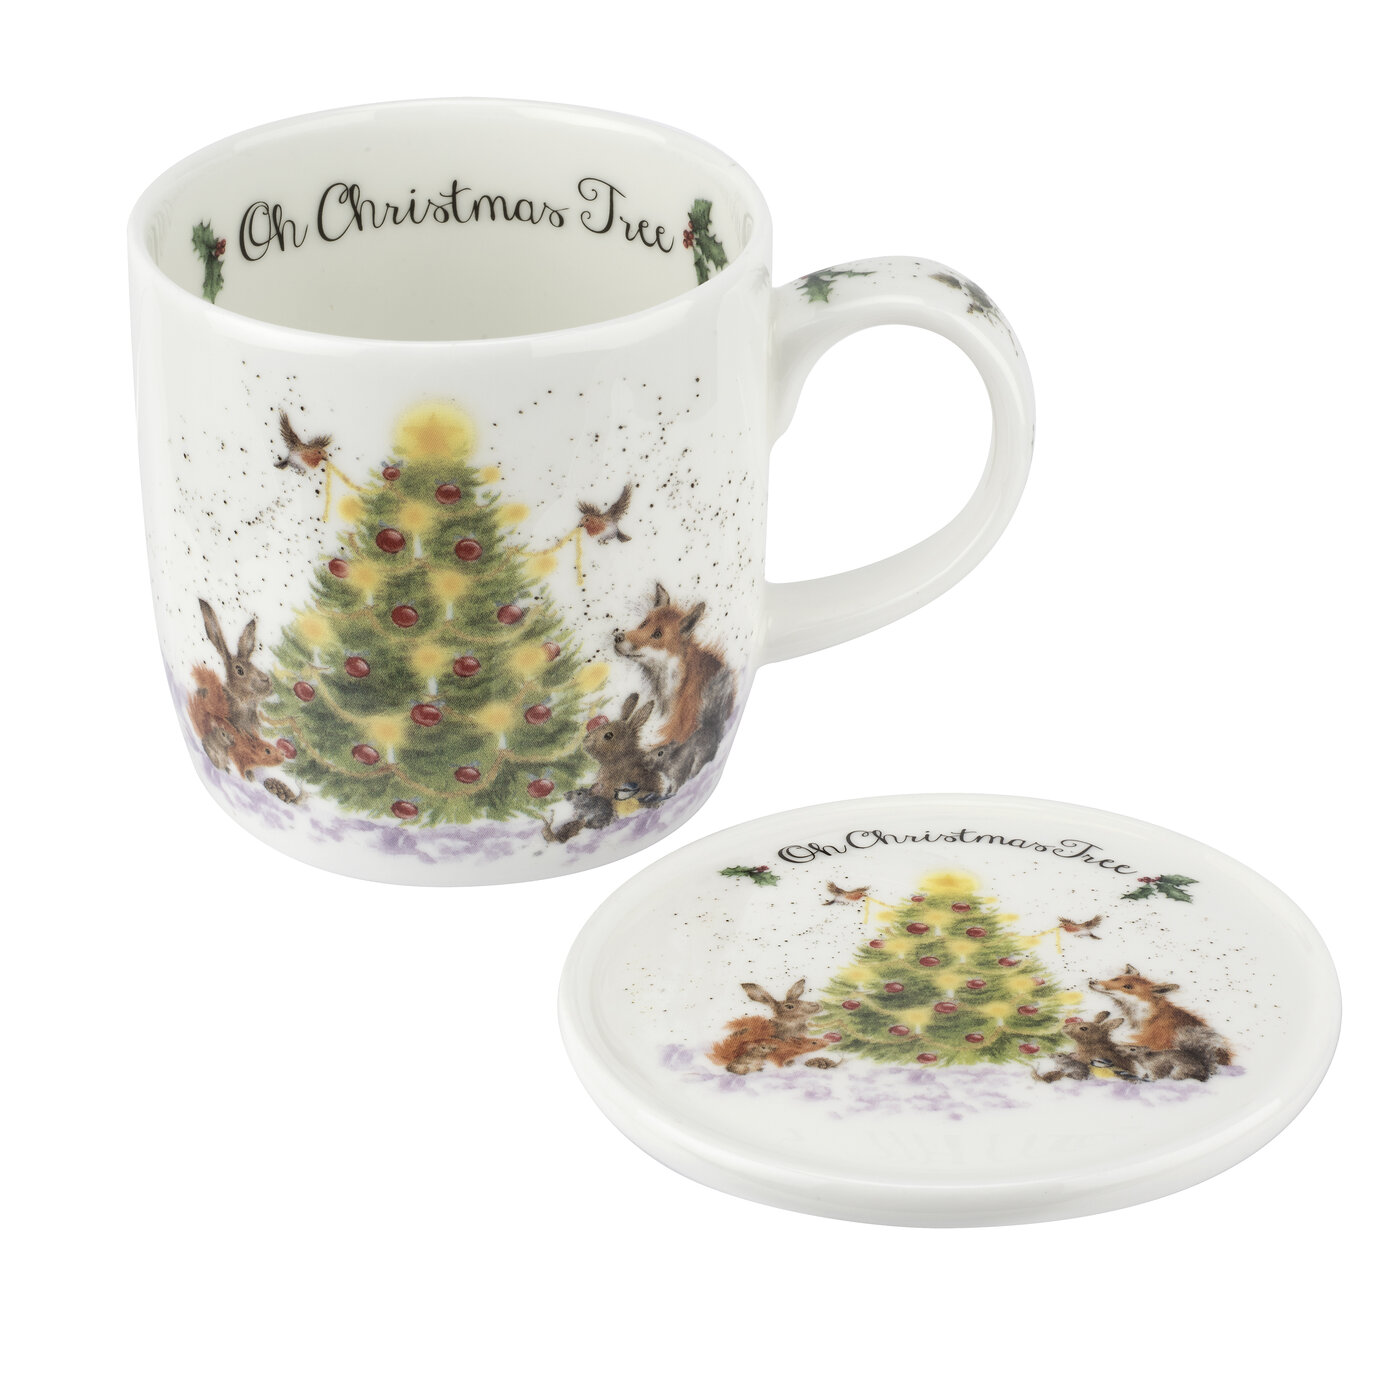 Royal Worcester Wrendale Designs 11 oz Mug & Coaster Set Oh Christmas Tree (Woodland Friends) image number 0